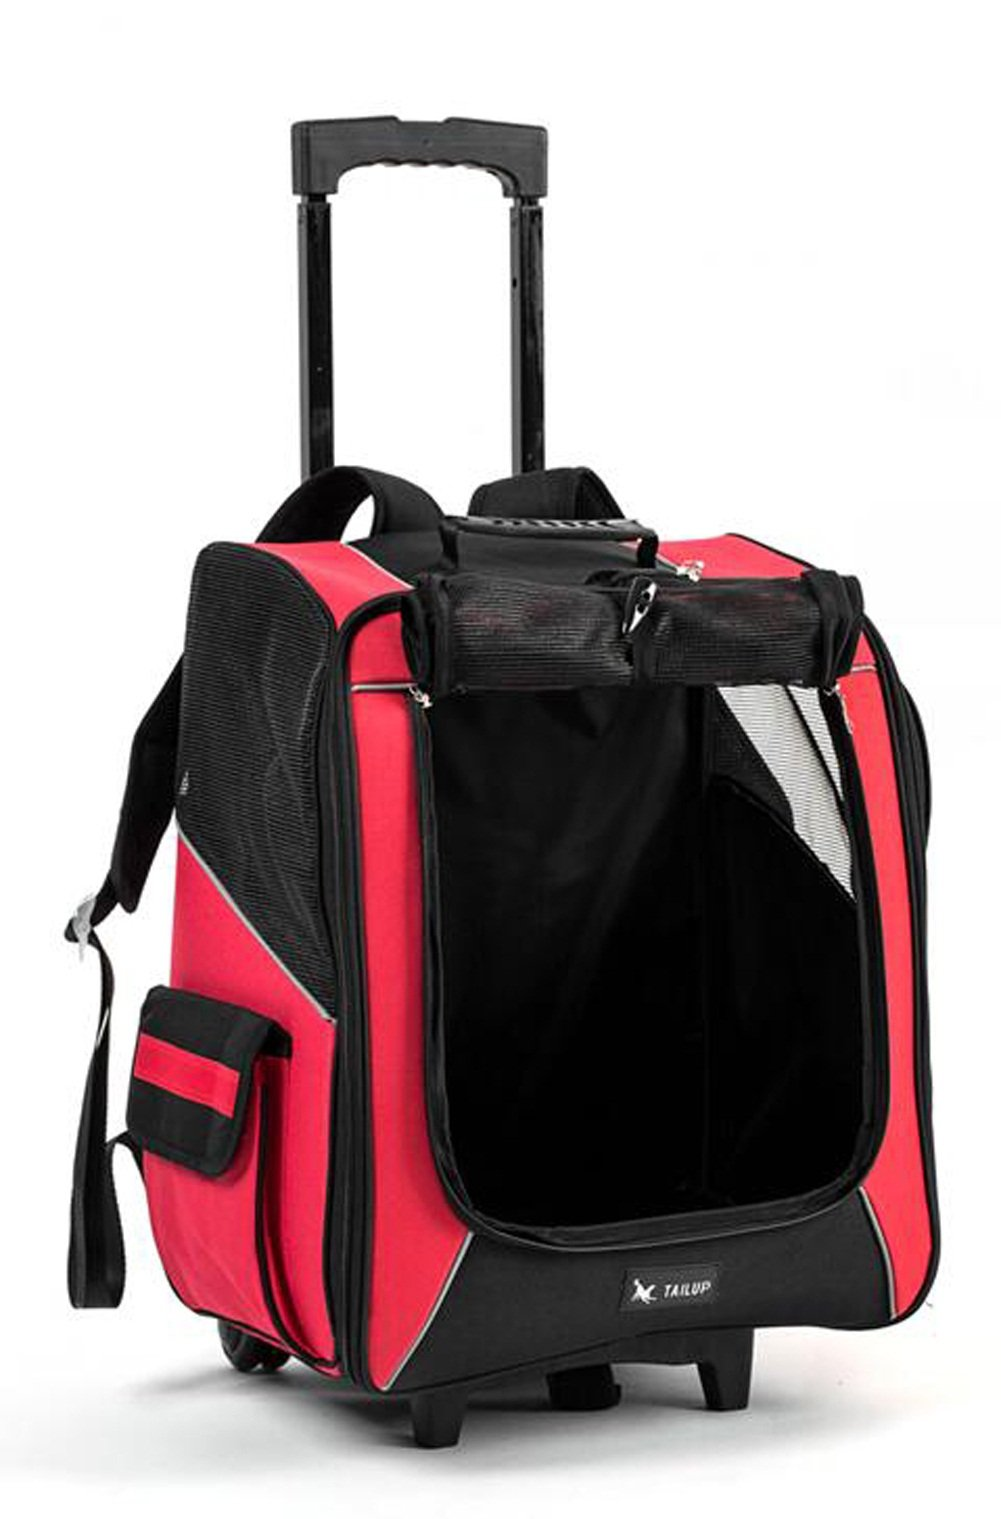 Kuoser 4-in-1 Oxford Pet Carrier Rolling Backpack Puppy Trolley Rolling Backpack Airline Approved Travel Wheels Luggage Bag Car Seat Carrier for Cats/Dogs small animal Red